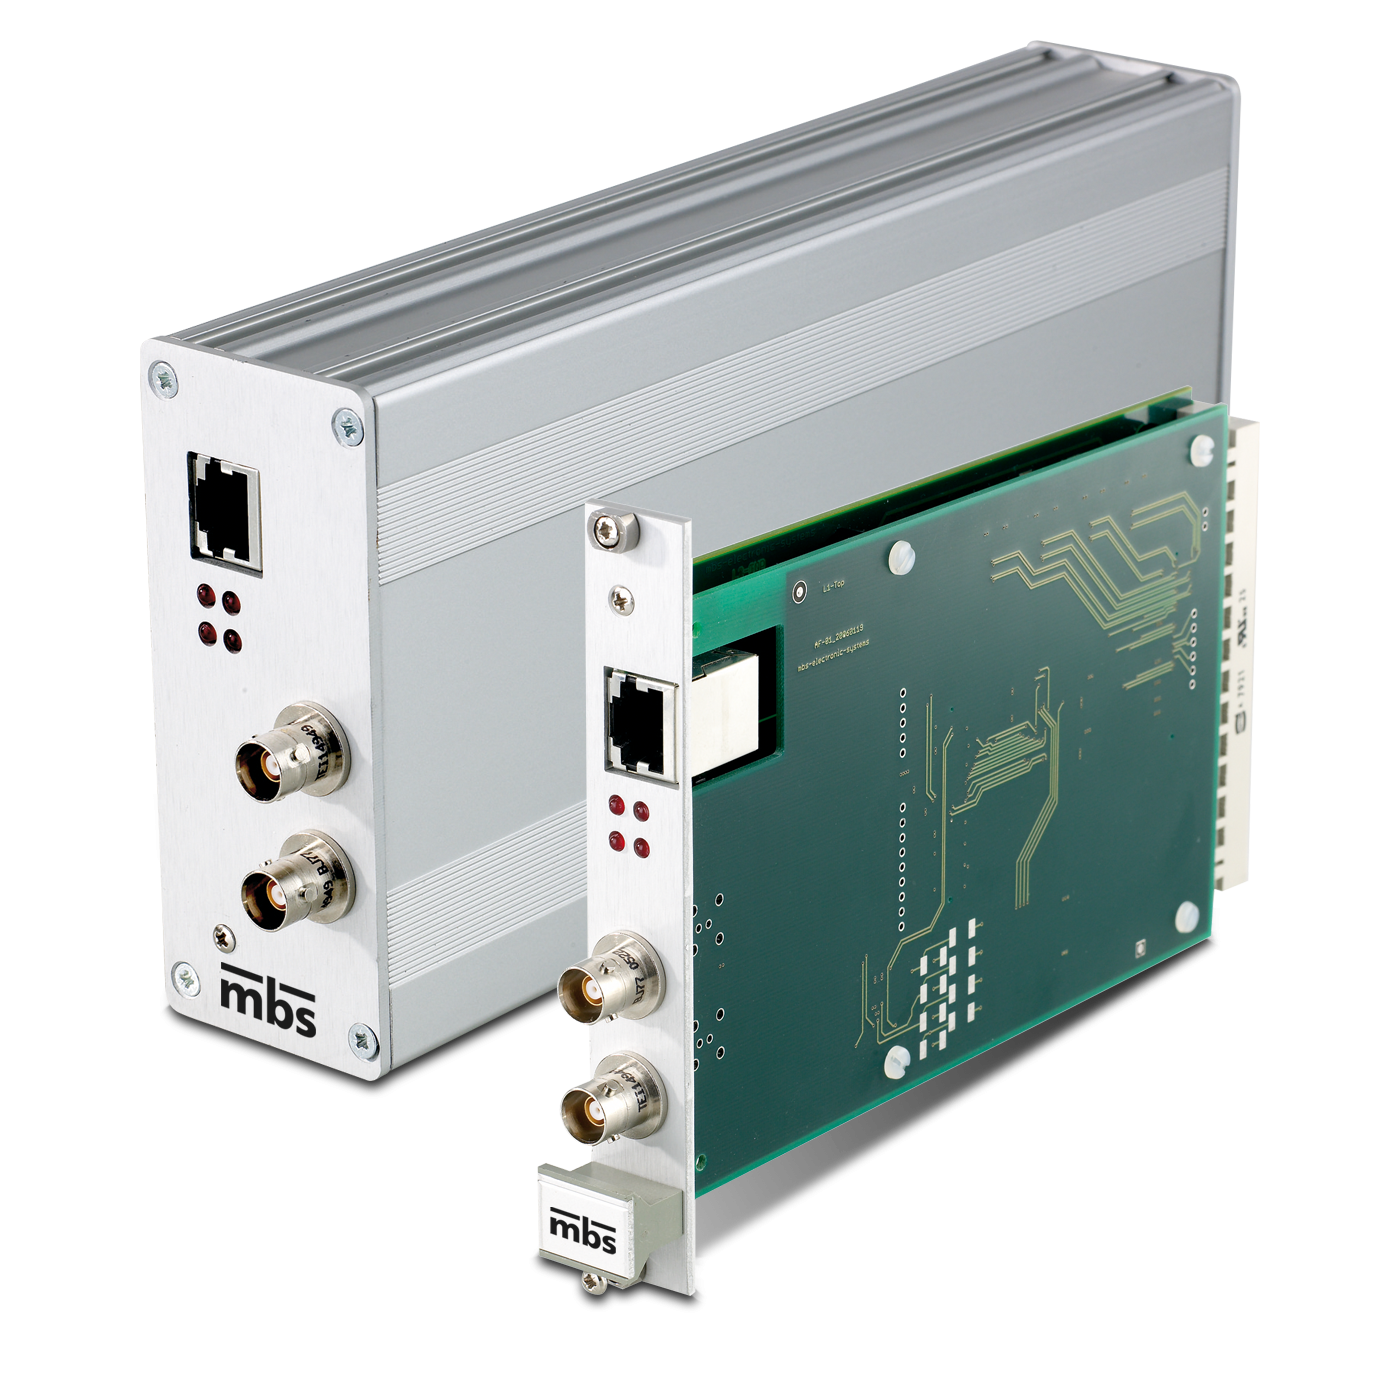 1553 Interface to Gigabit Ethernet : mbs electronic systems